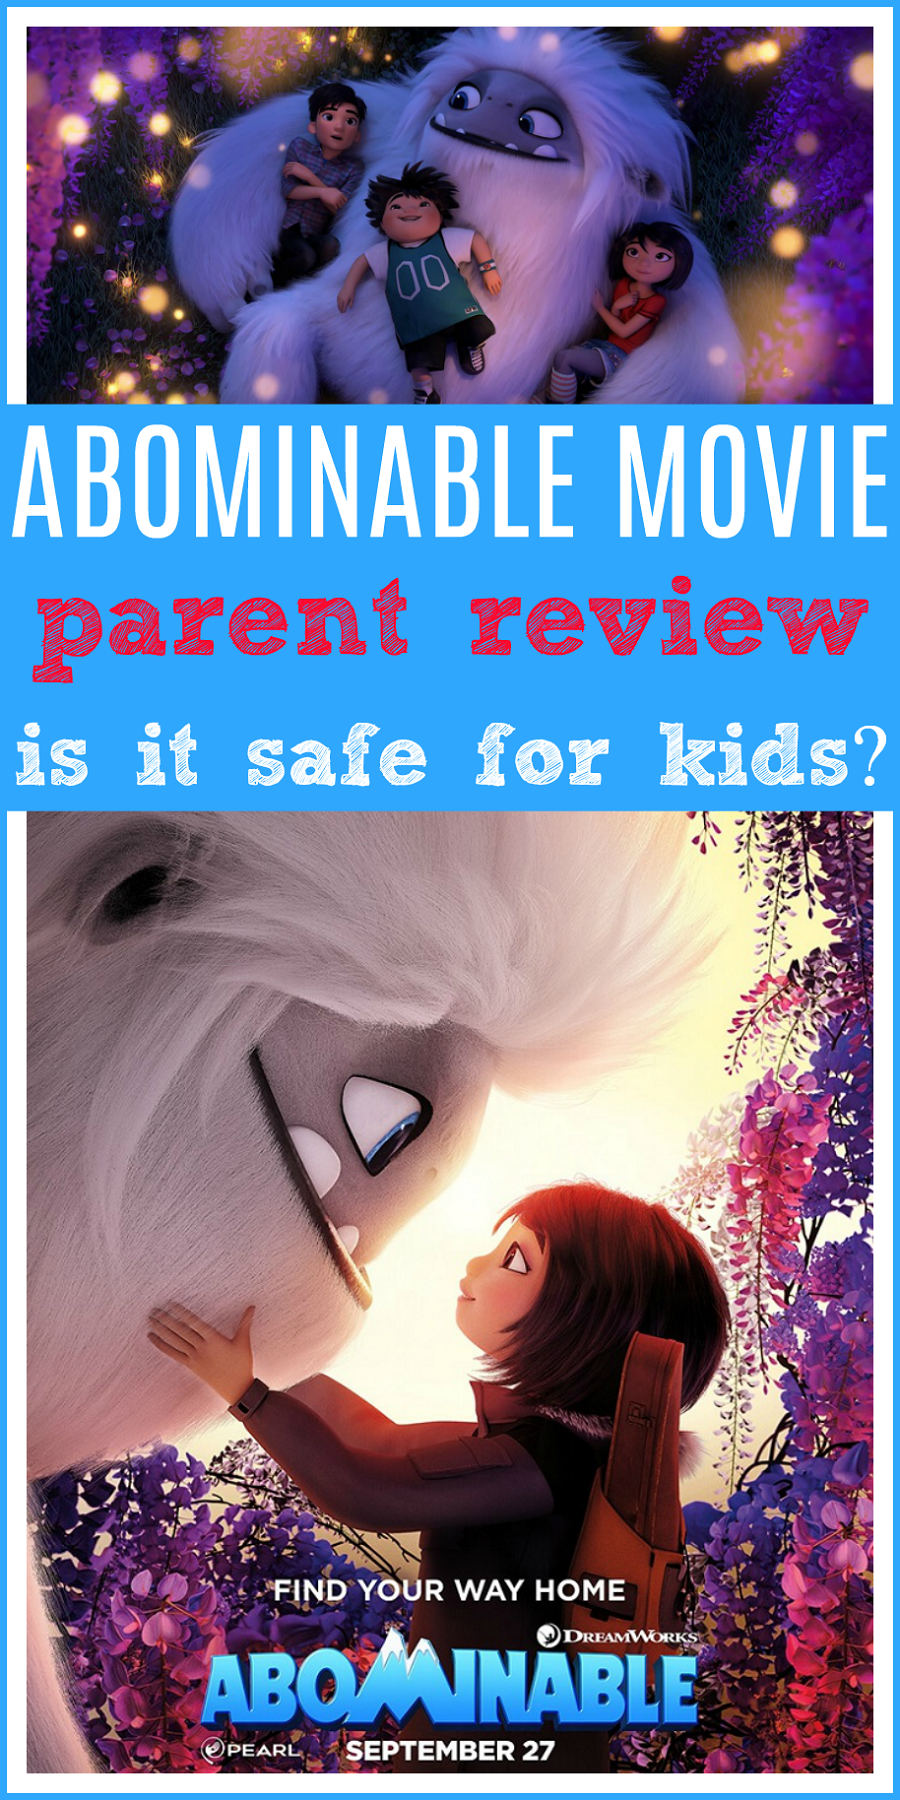 Abominable Movie Review (With images) Kids safe, Scary kids